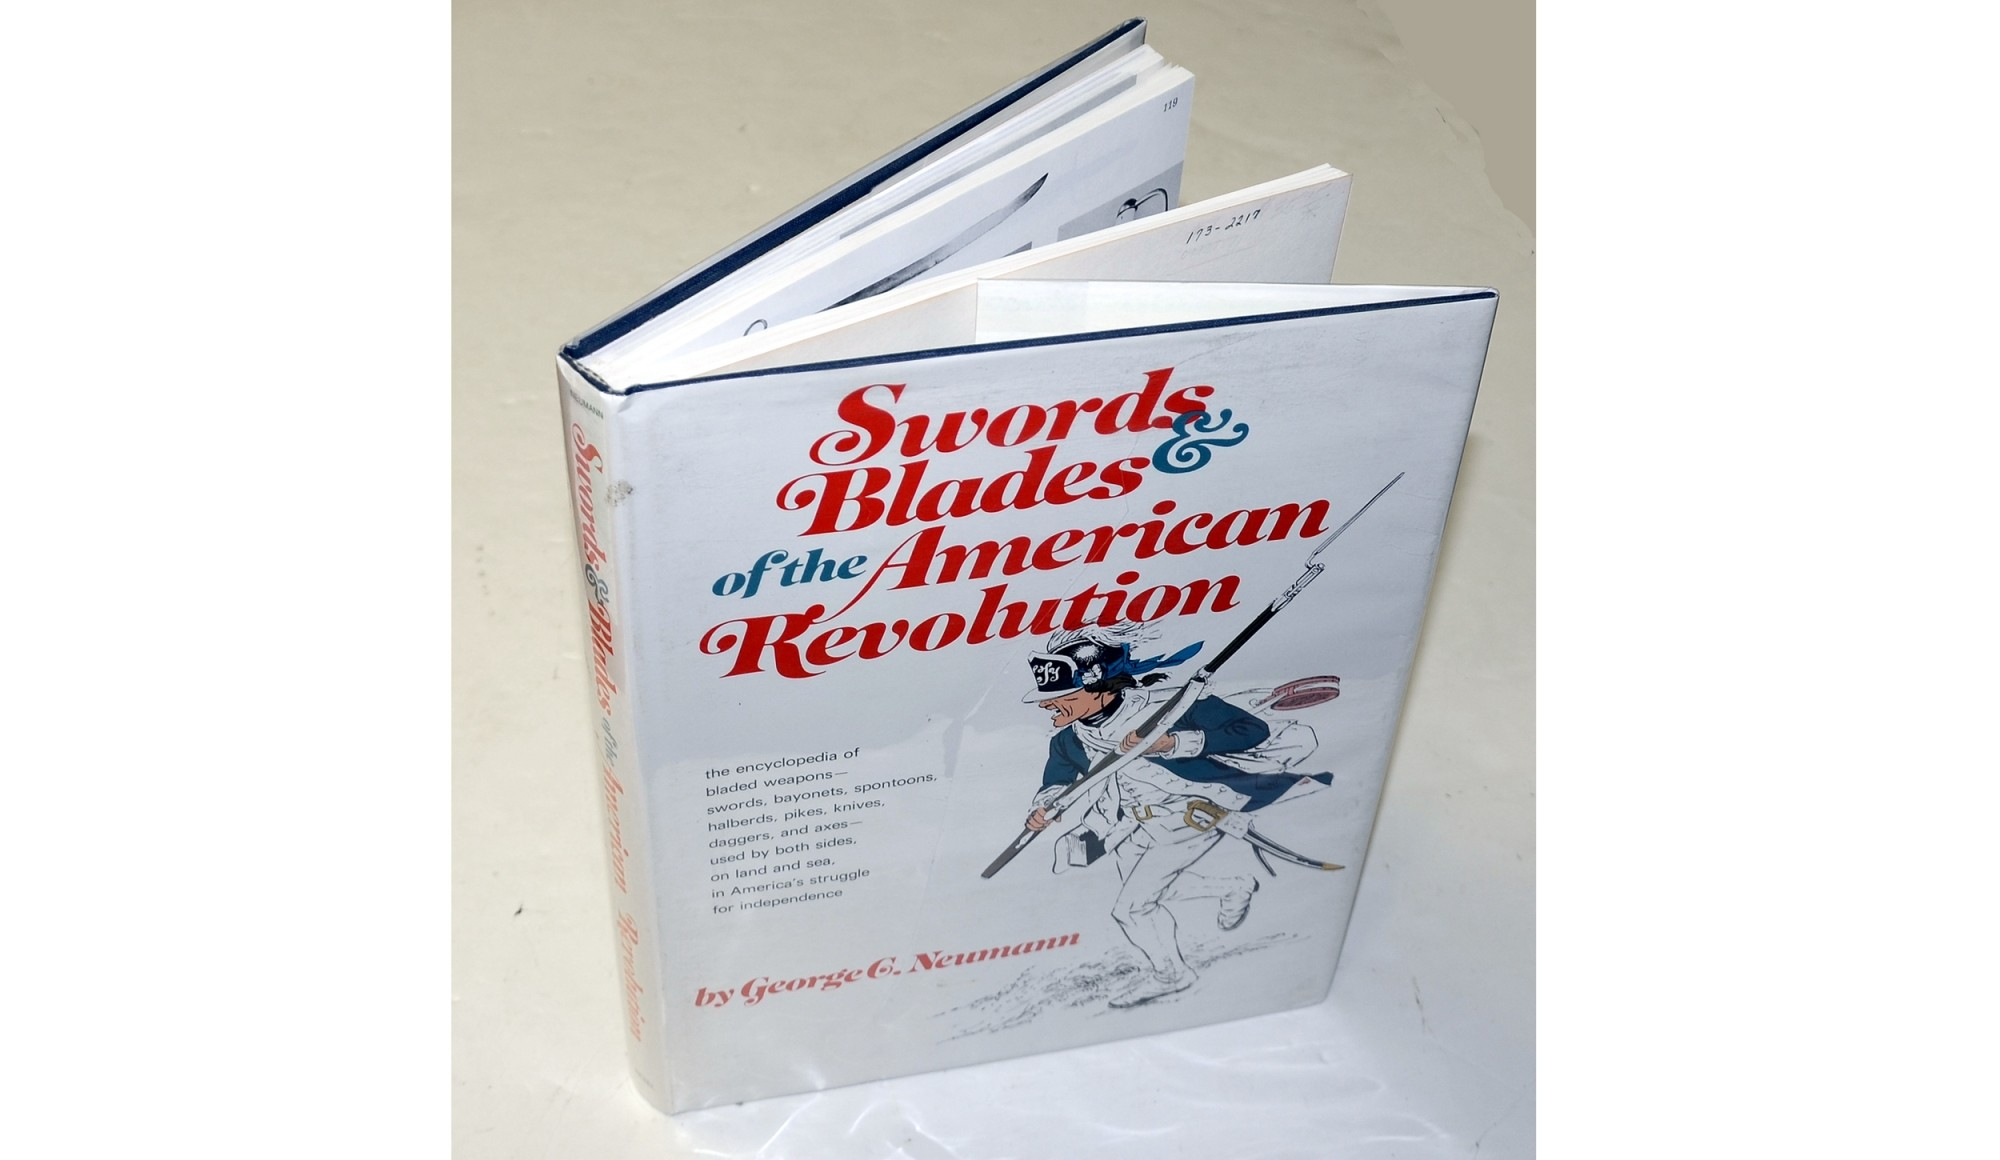 <I>SWORDS & BLADES OF THE AMERICAN REVOLUTION</I> BY GEORGE G. NEUMANN